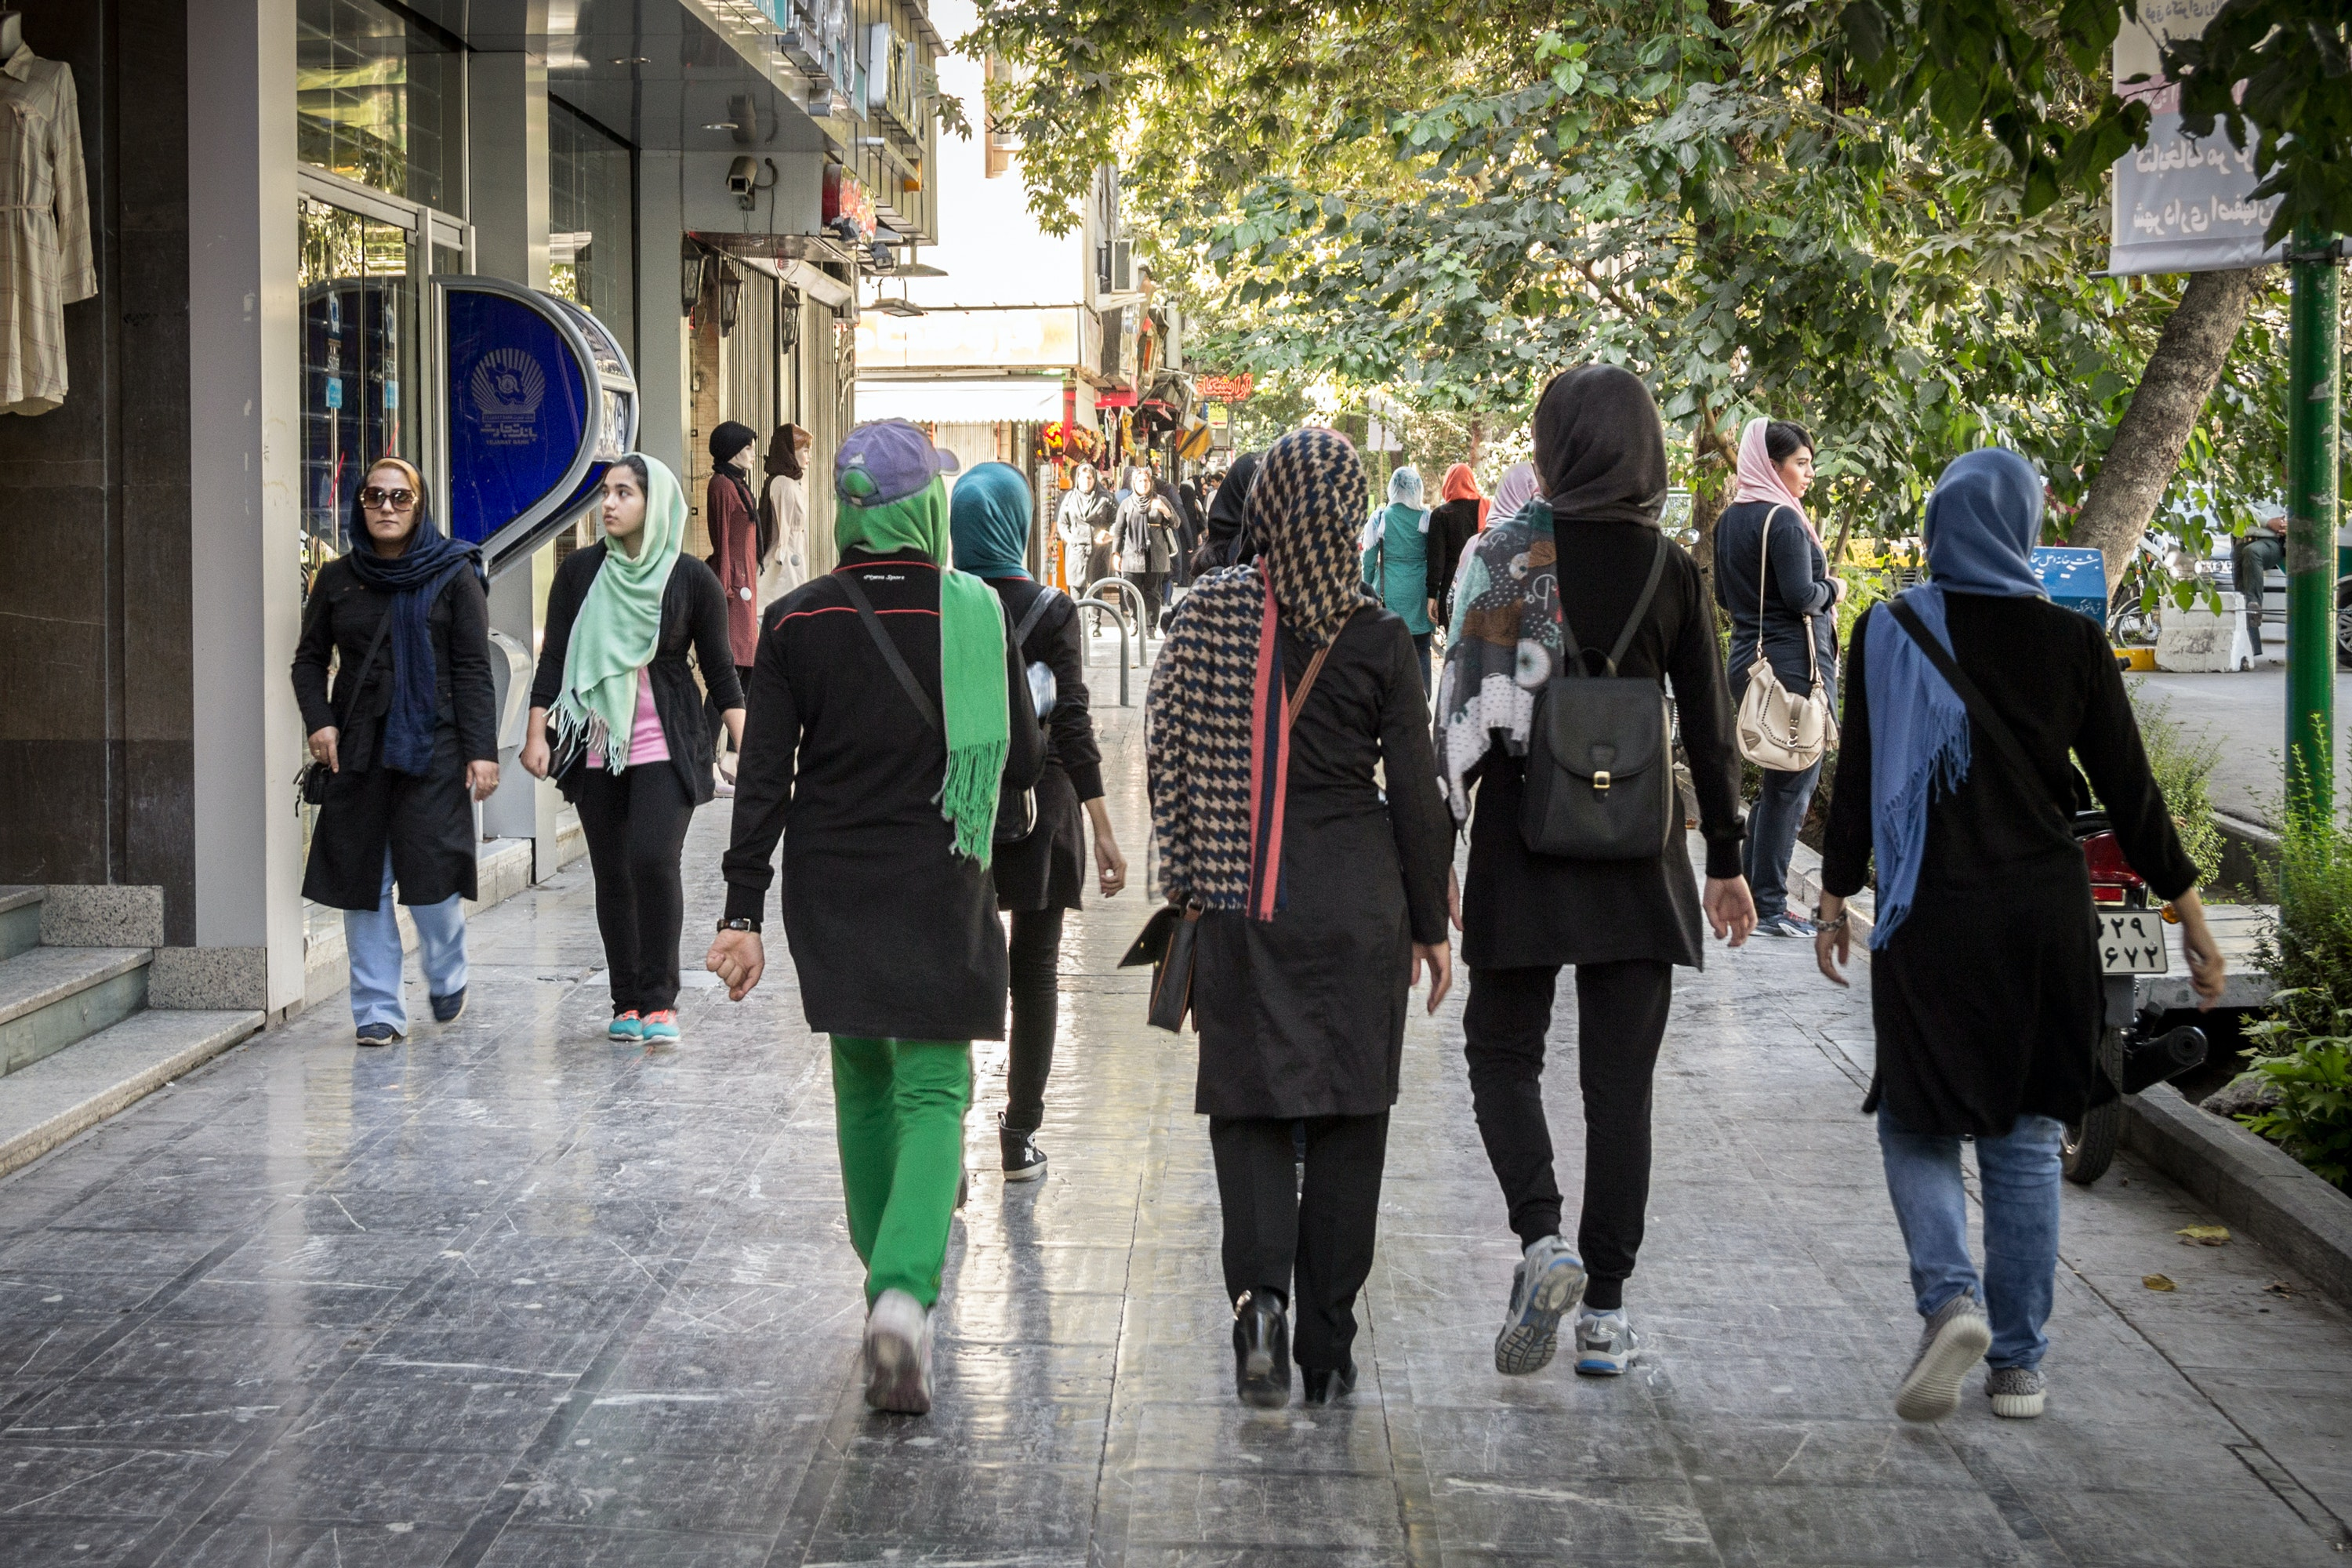 Women walking in the streets of Isfahan, Iran, in August 2016. (Shutterstock)